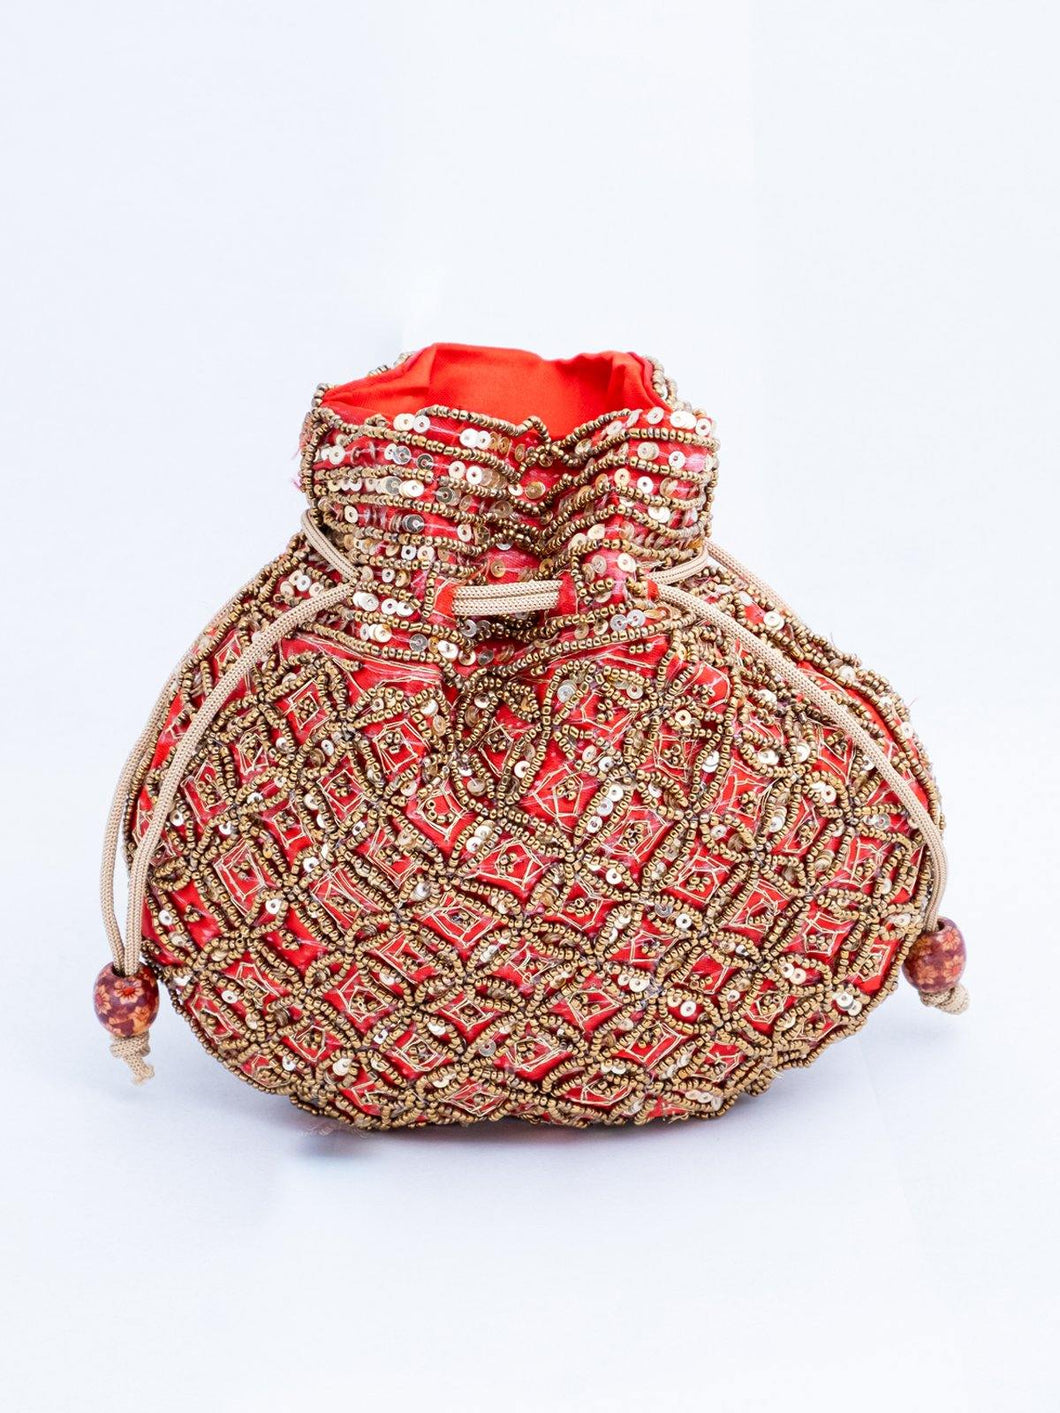 Red Sequin and Beads Potli Bag